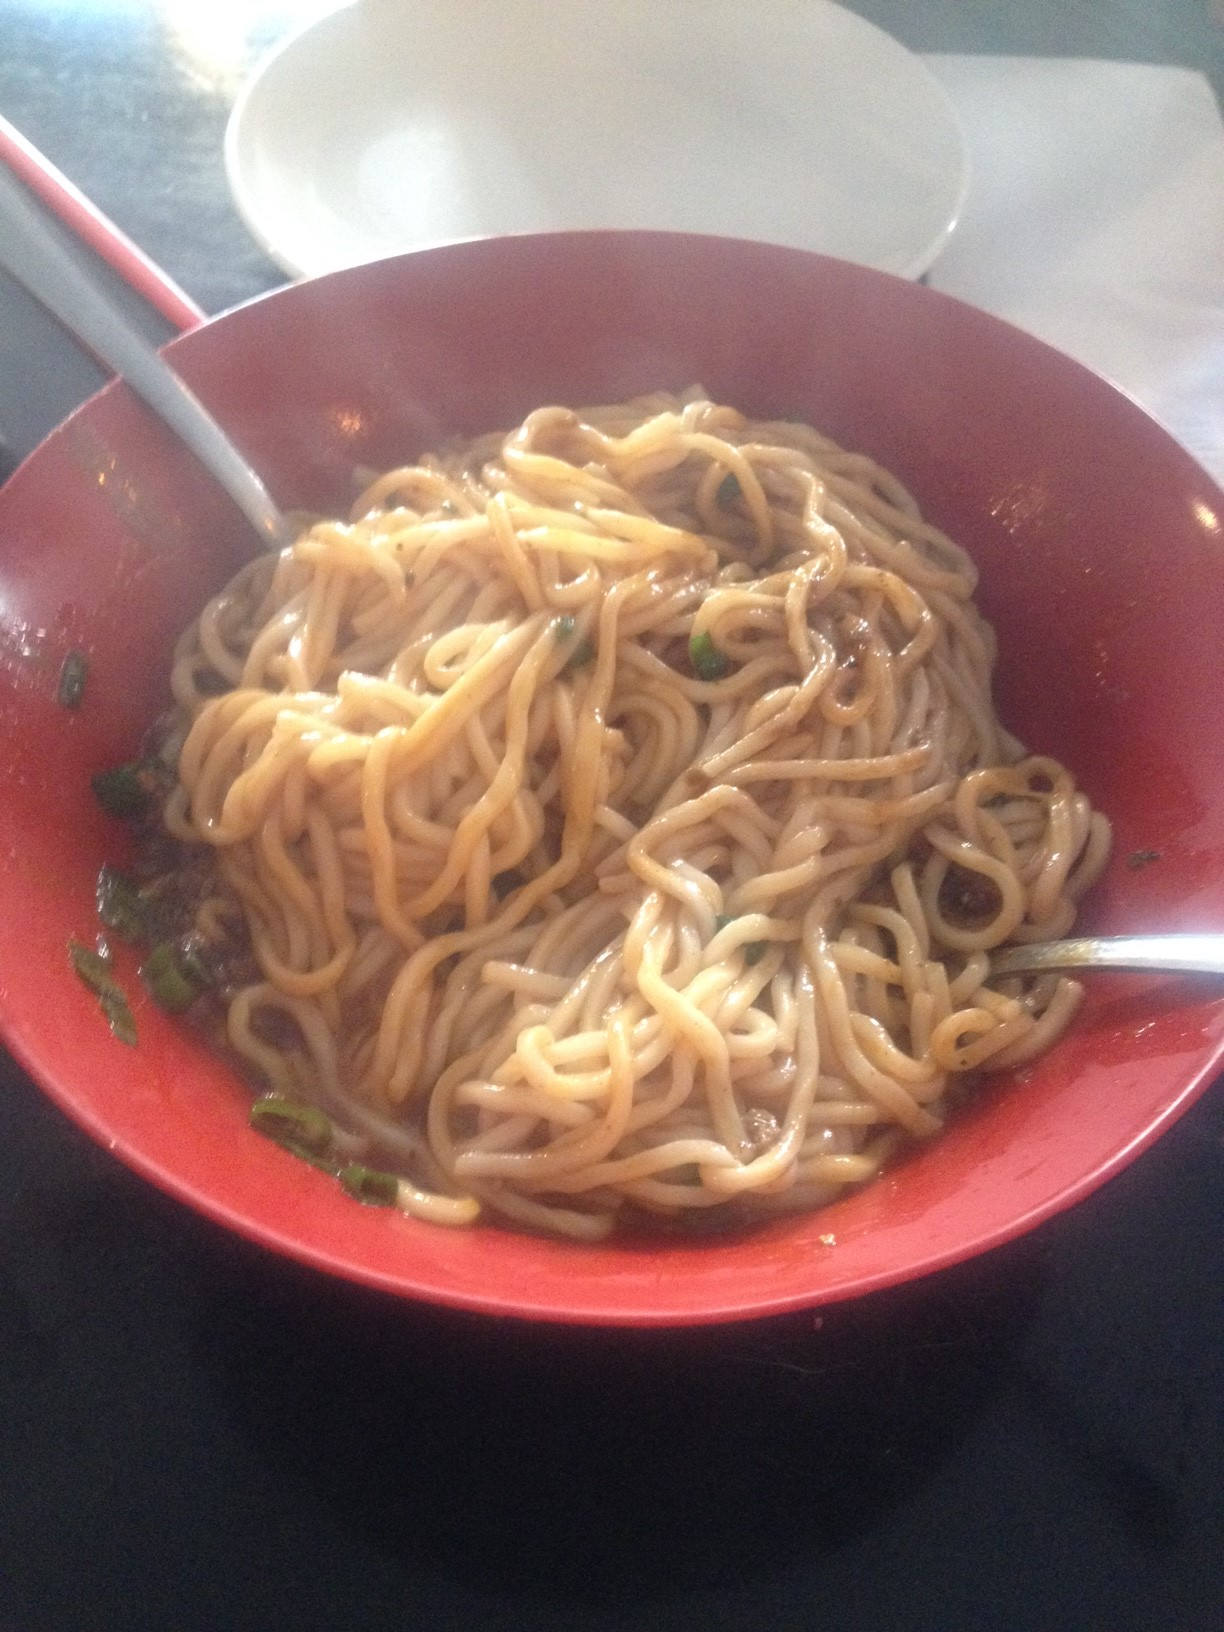 You must experience these noodles. They should be called Nom Nom Noodles